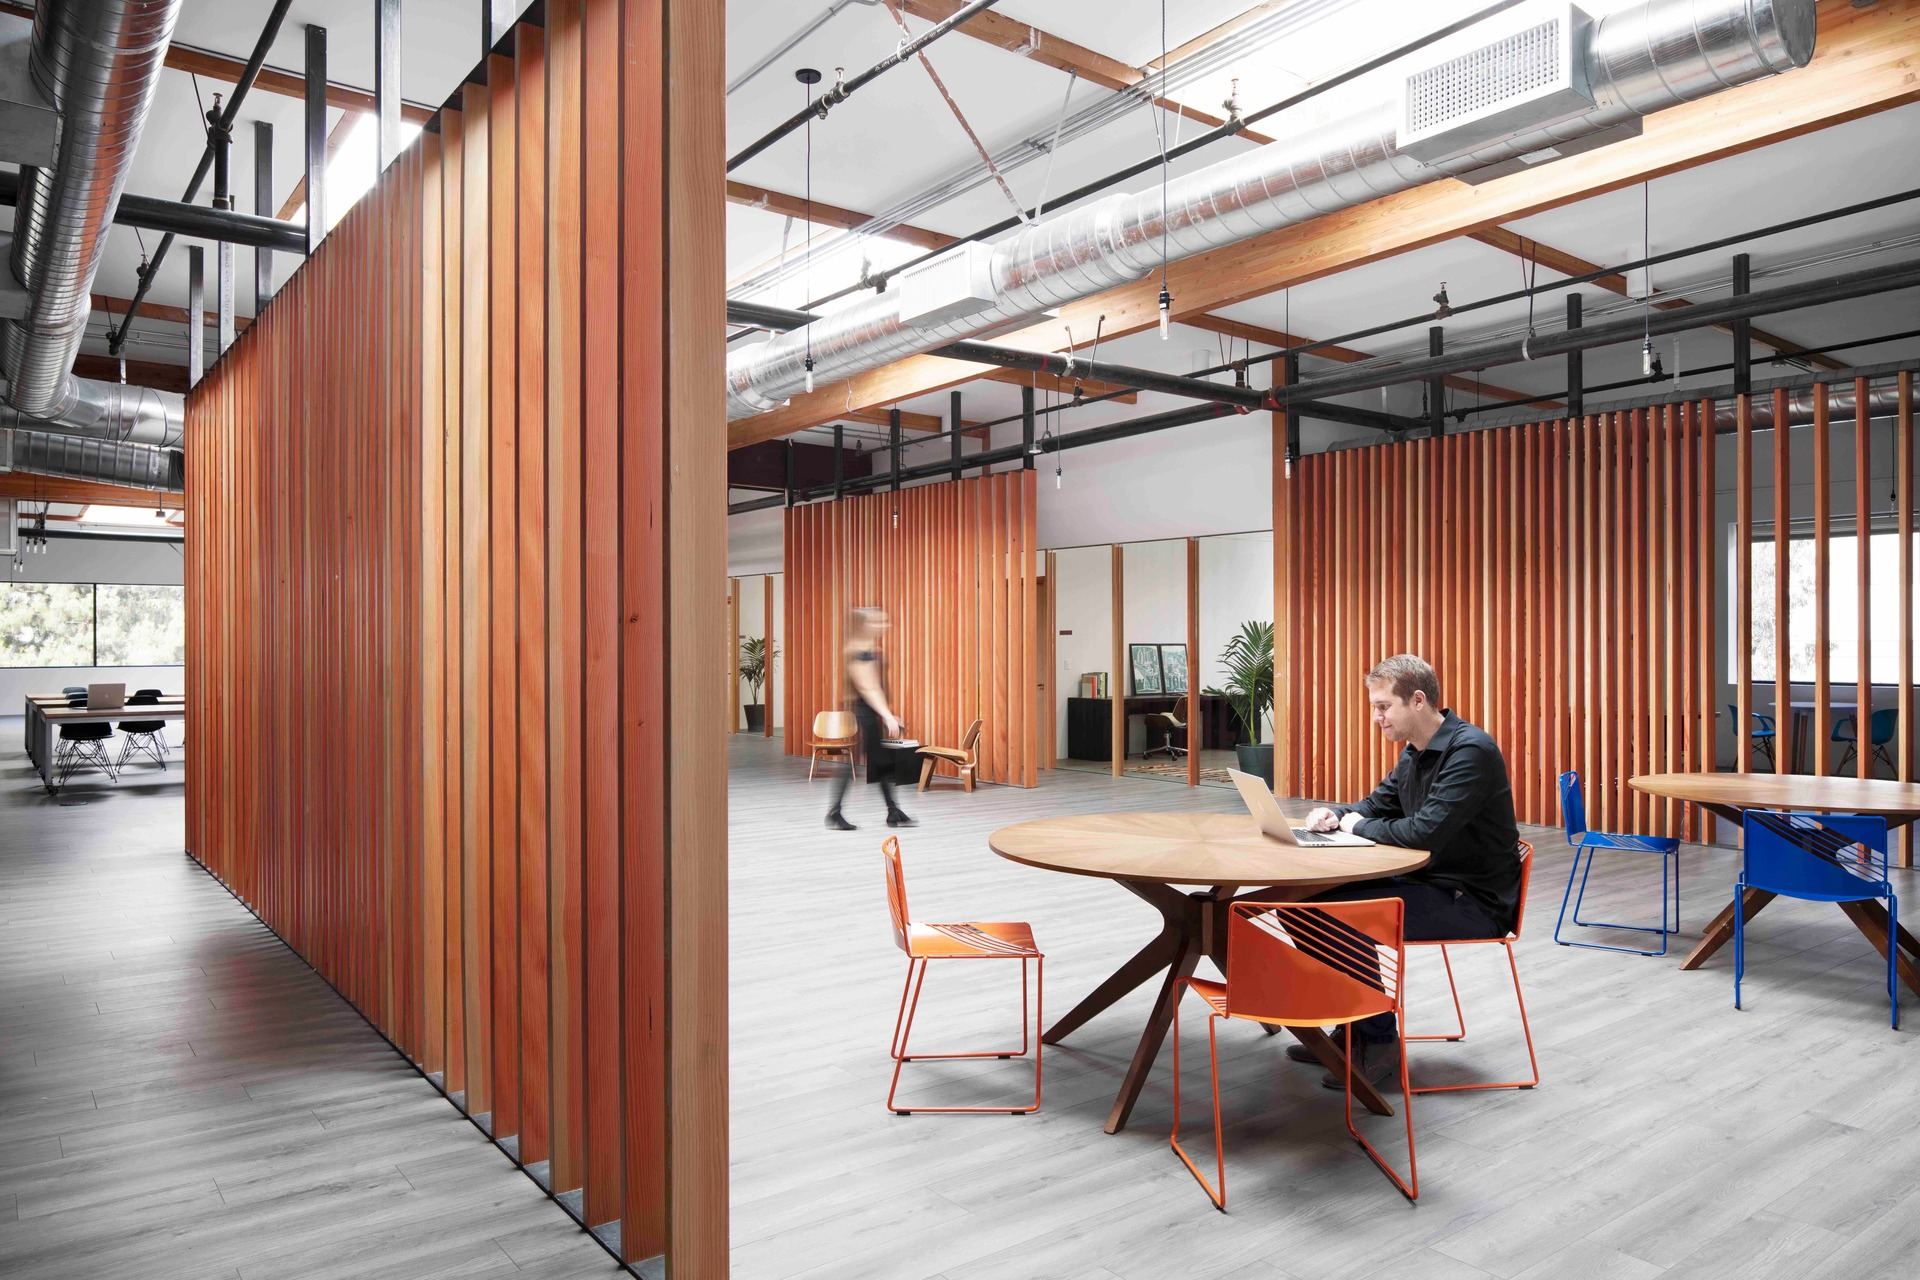 The new innovation hub is housed in an existing tilt up construction warehouse. The 21,000 square foot co-working space includes open work areas, two shared kitchens, meeting spaces, private offices and a large gathering and presentation area for events.